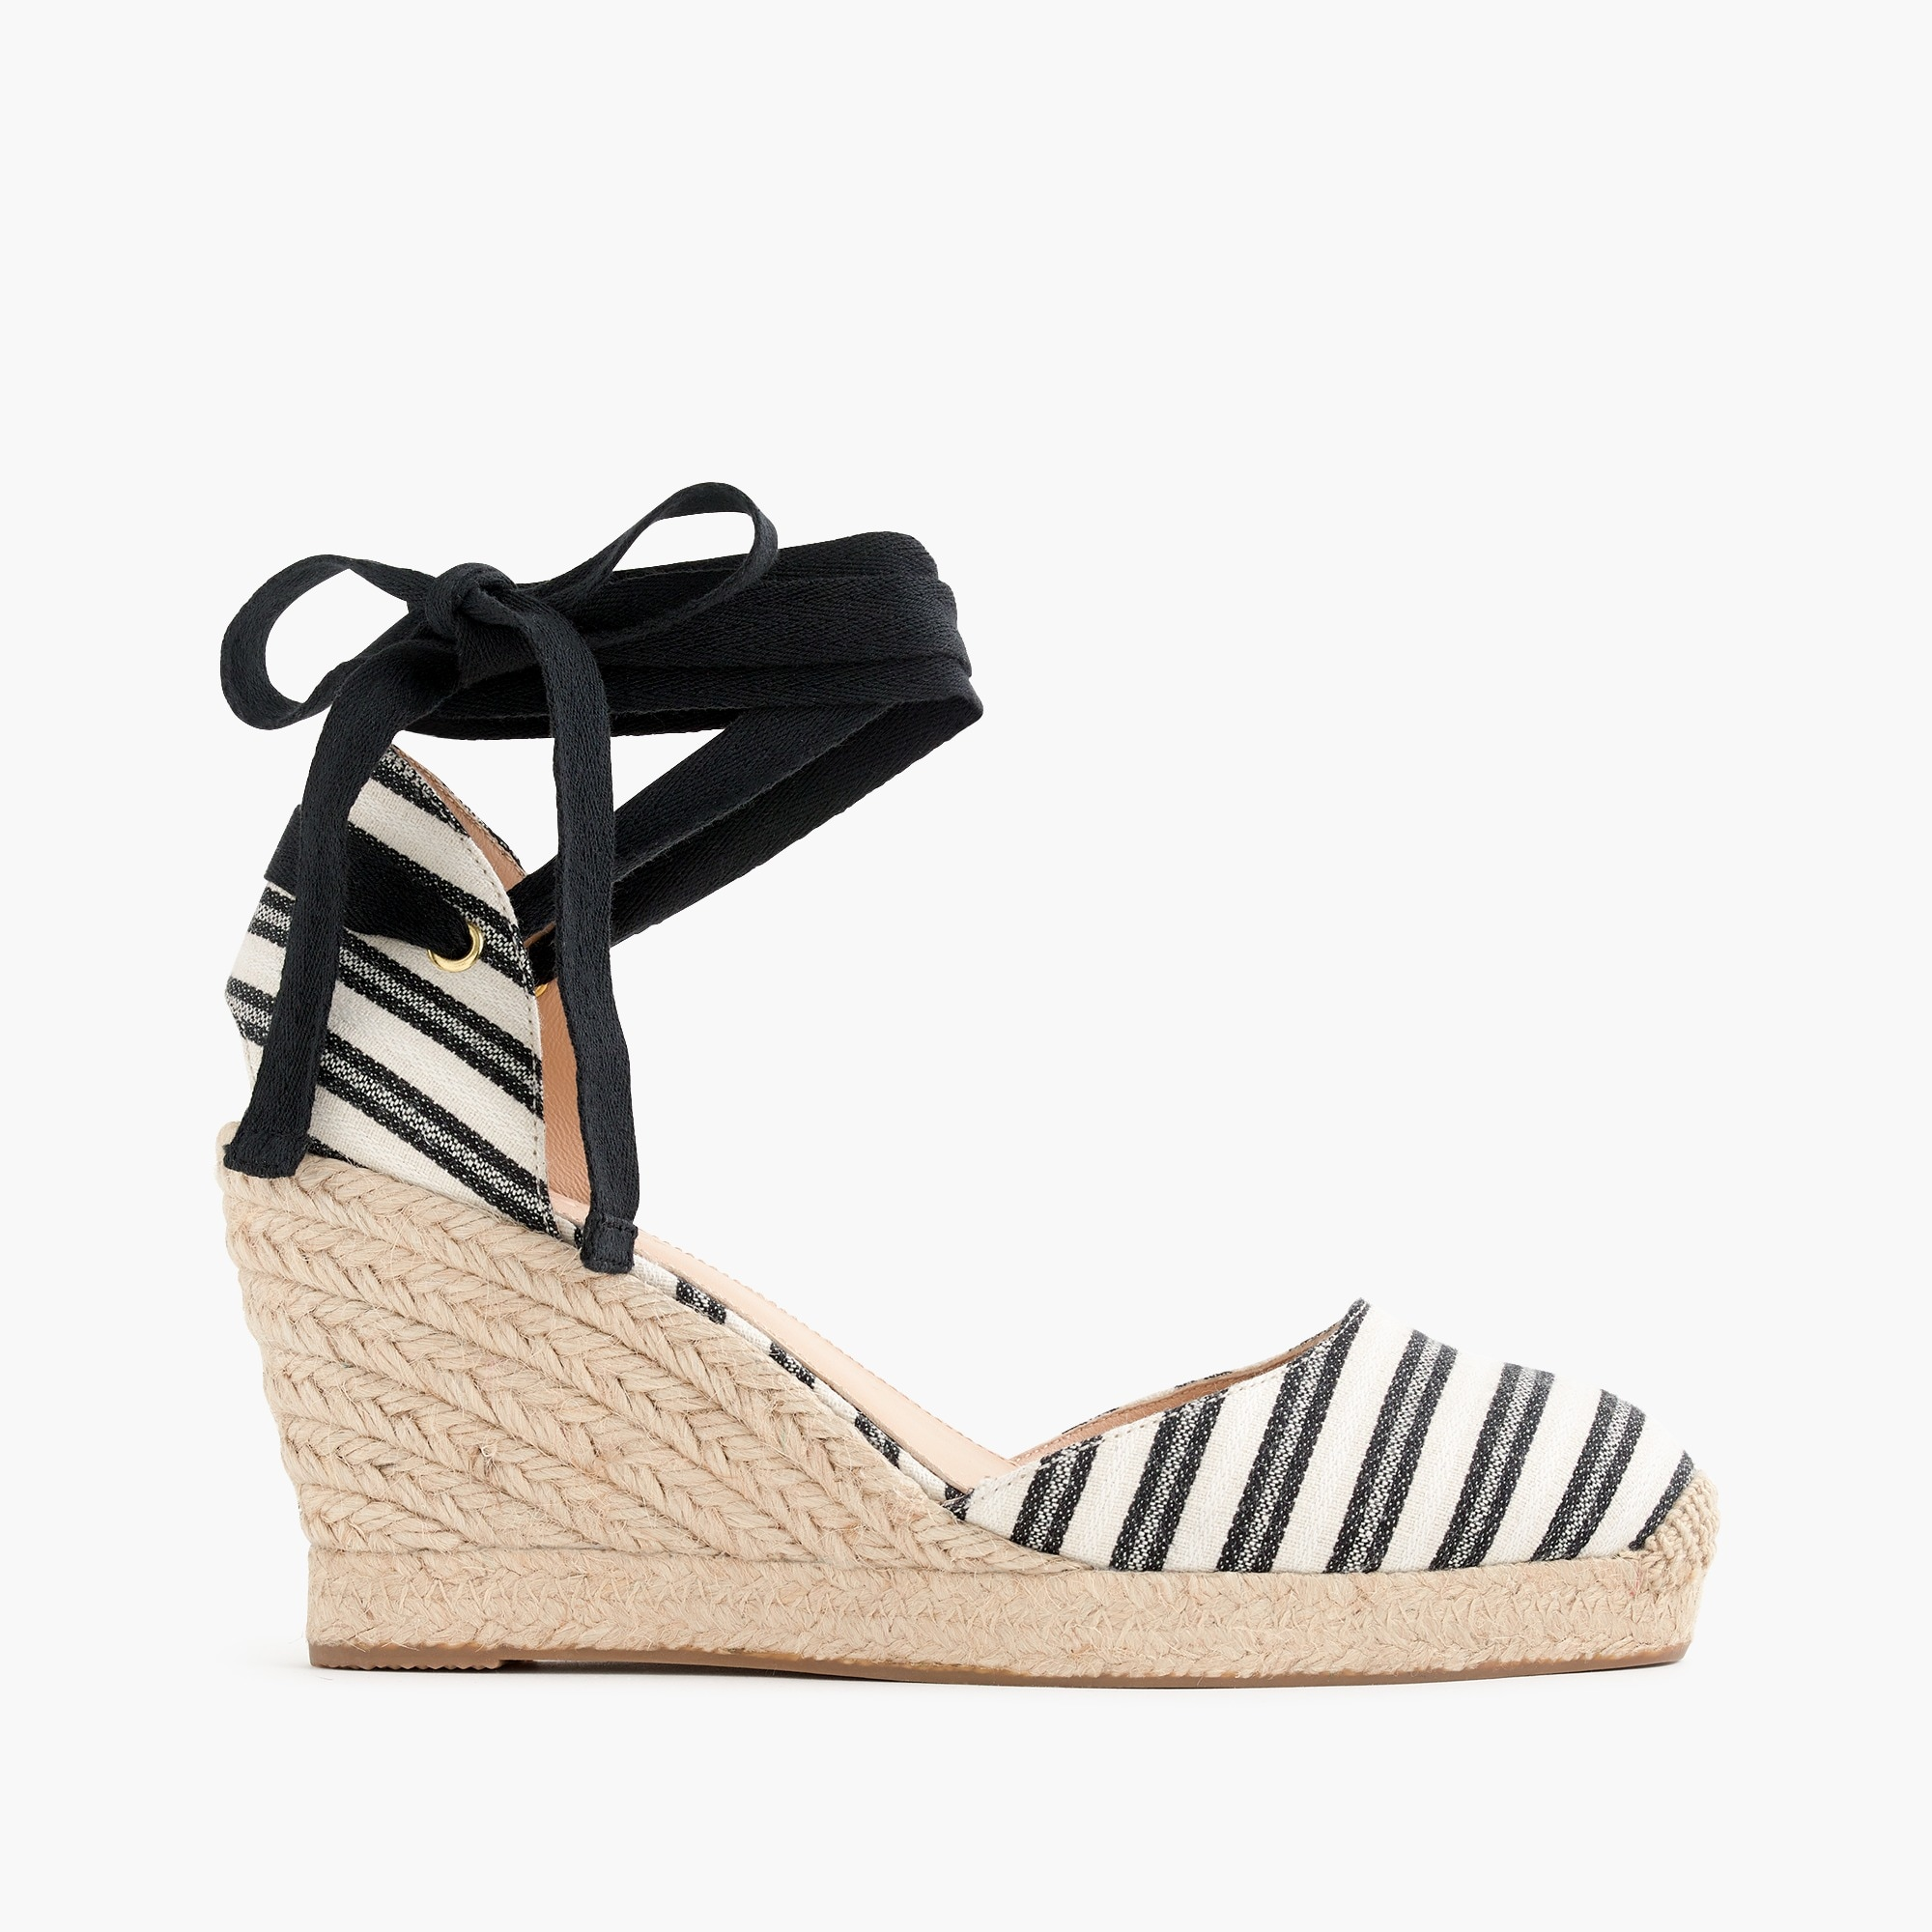 Image 2 for Espadrille wedges (83mm) with ankle wrap in stripe